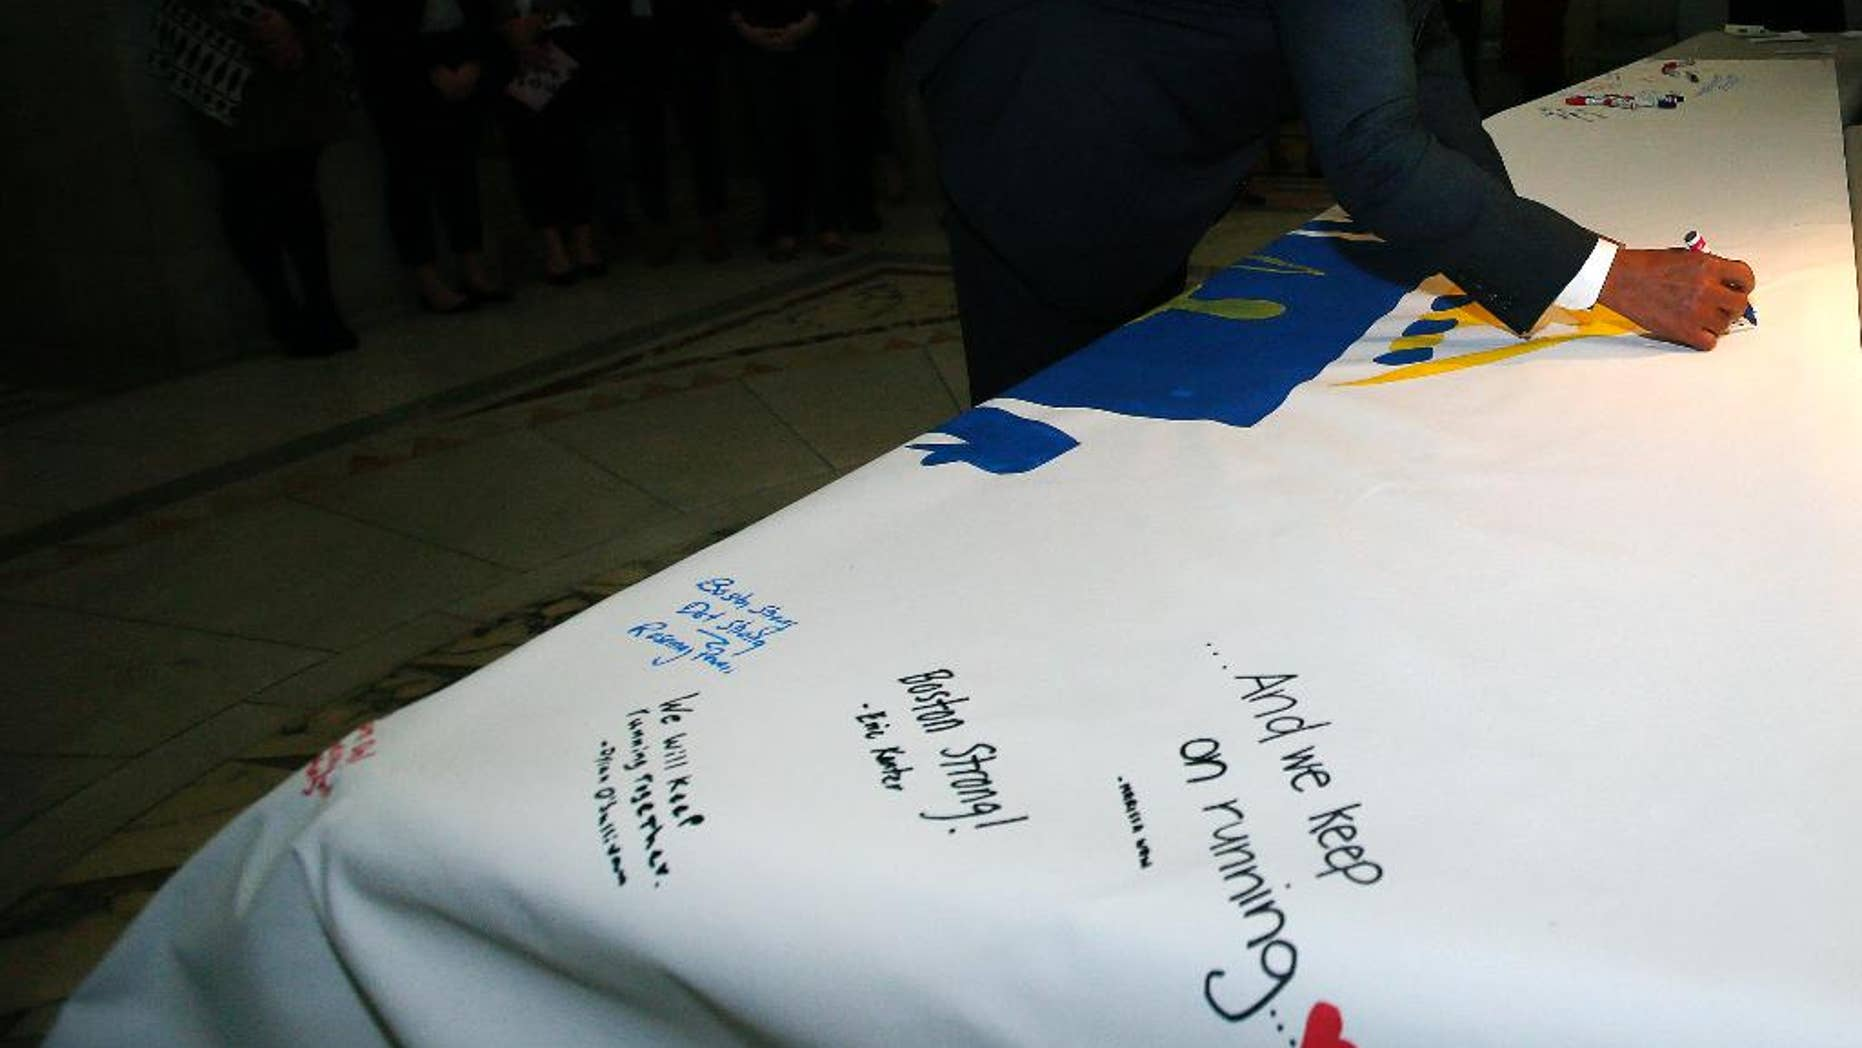 Mass. Gov. Deval Patrick signs the America 4 Prayer Canvas in support and remembrance of the 2013 Boston Marathon bombing victims and survivors at the Statehouse in Boston, Friday, April 11, 2014. (AP Photo/Elise Amendola)